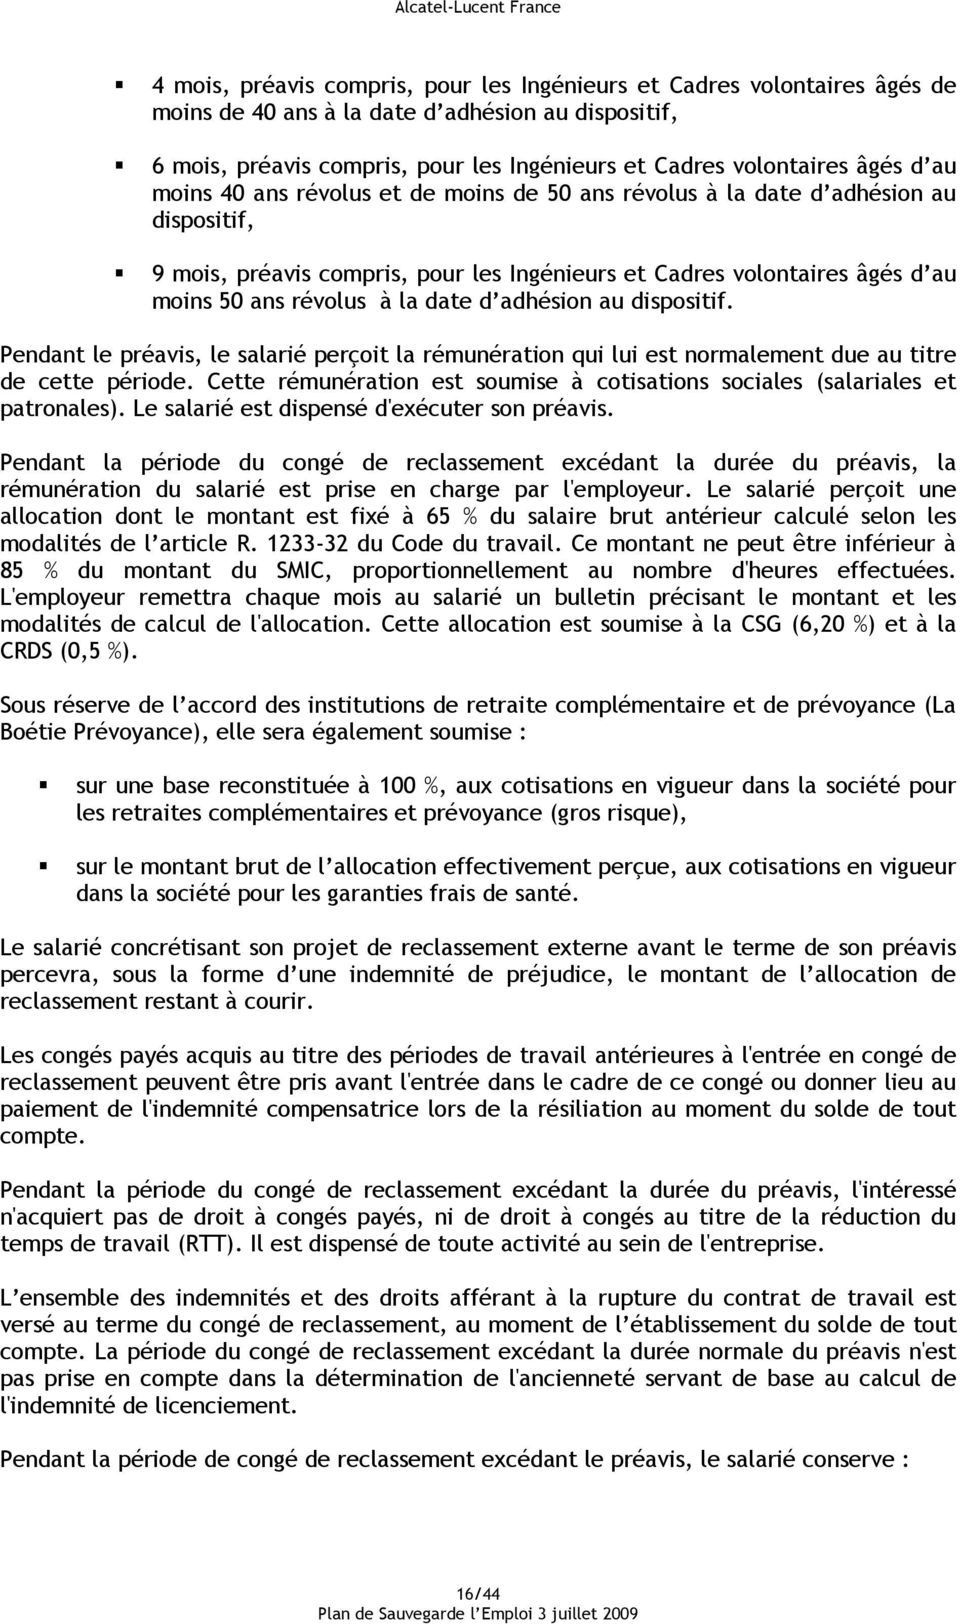 Alcatel Lucent France Pdf